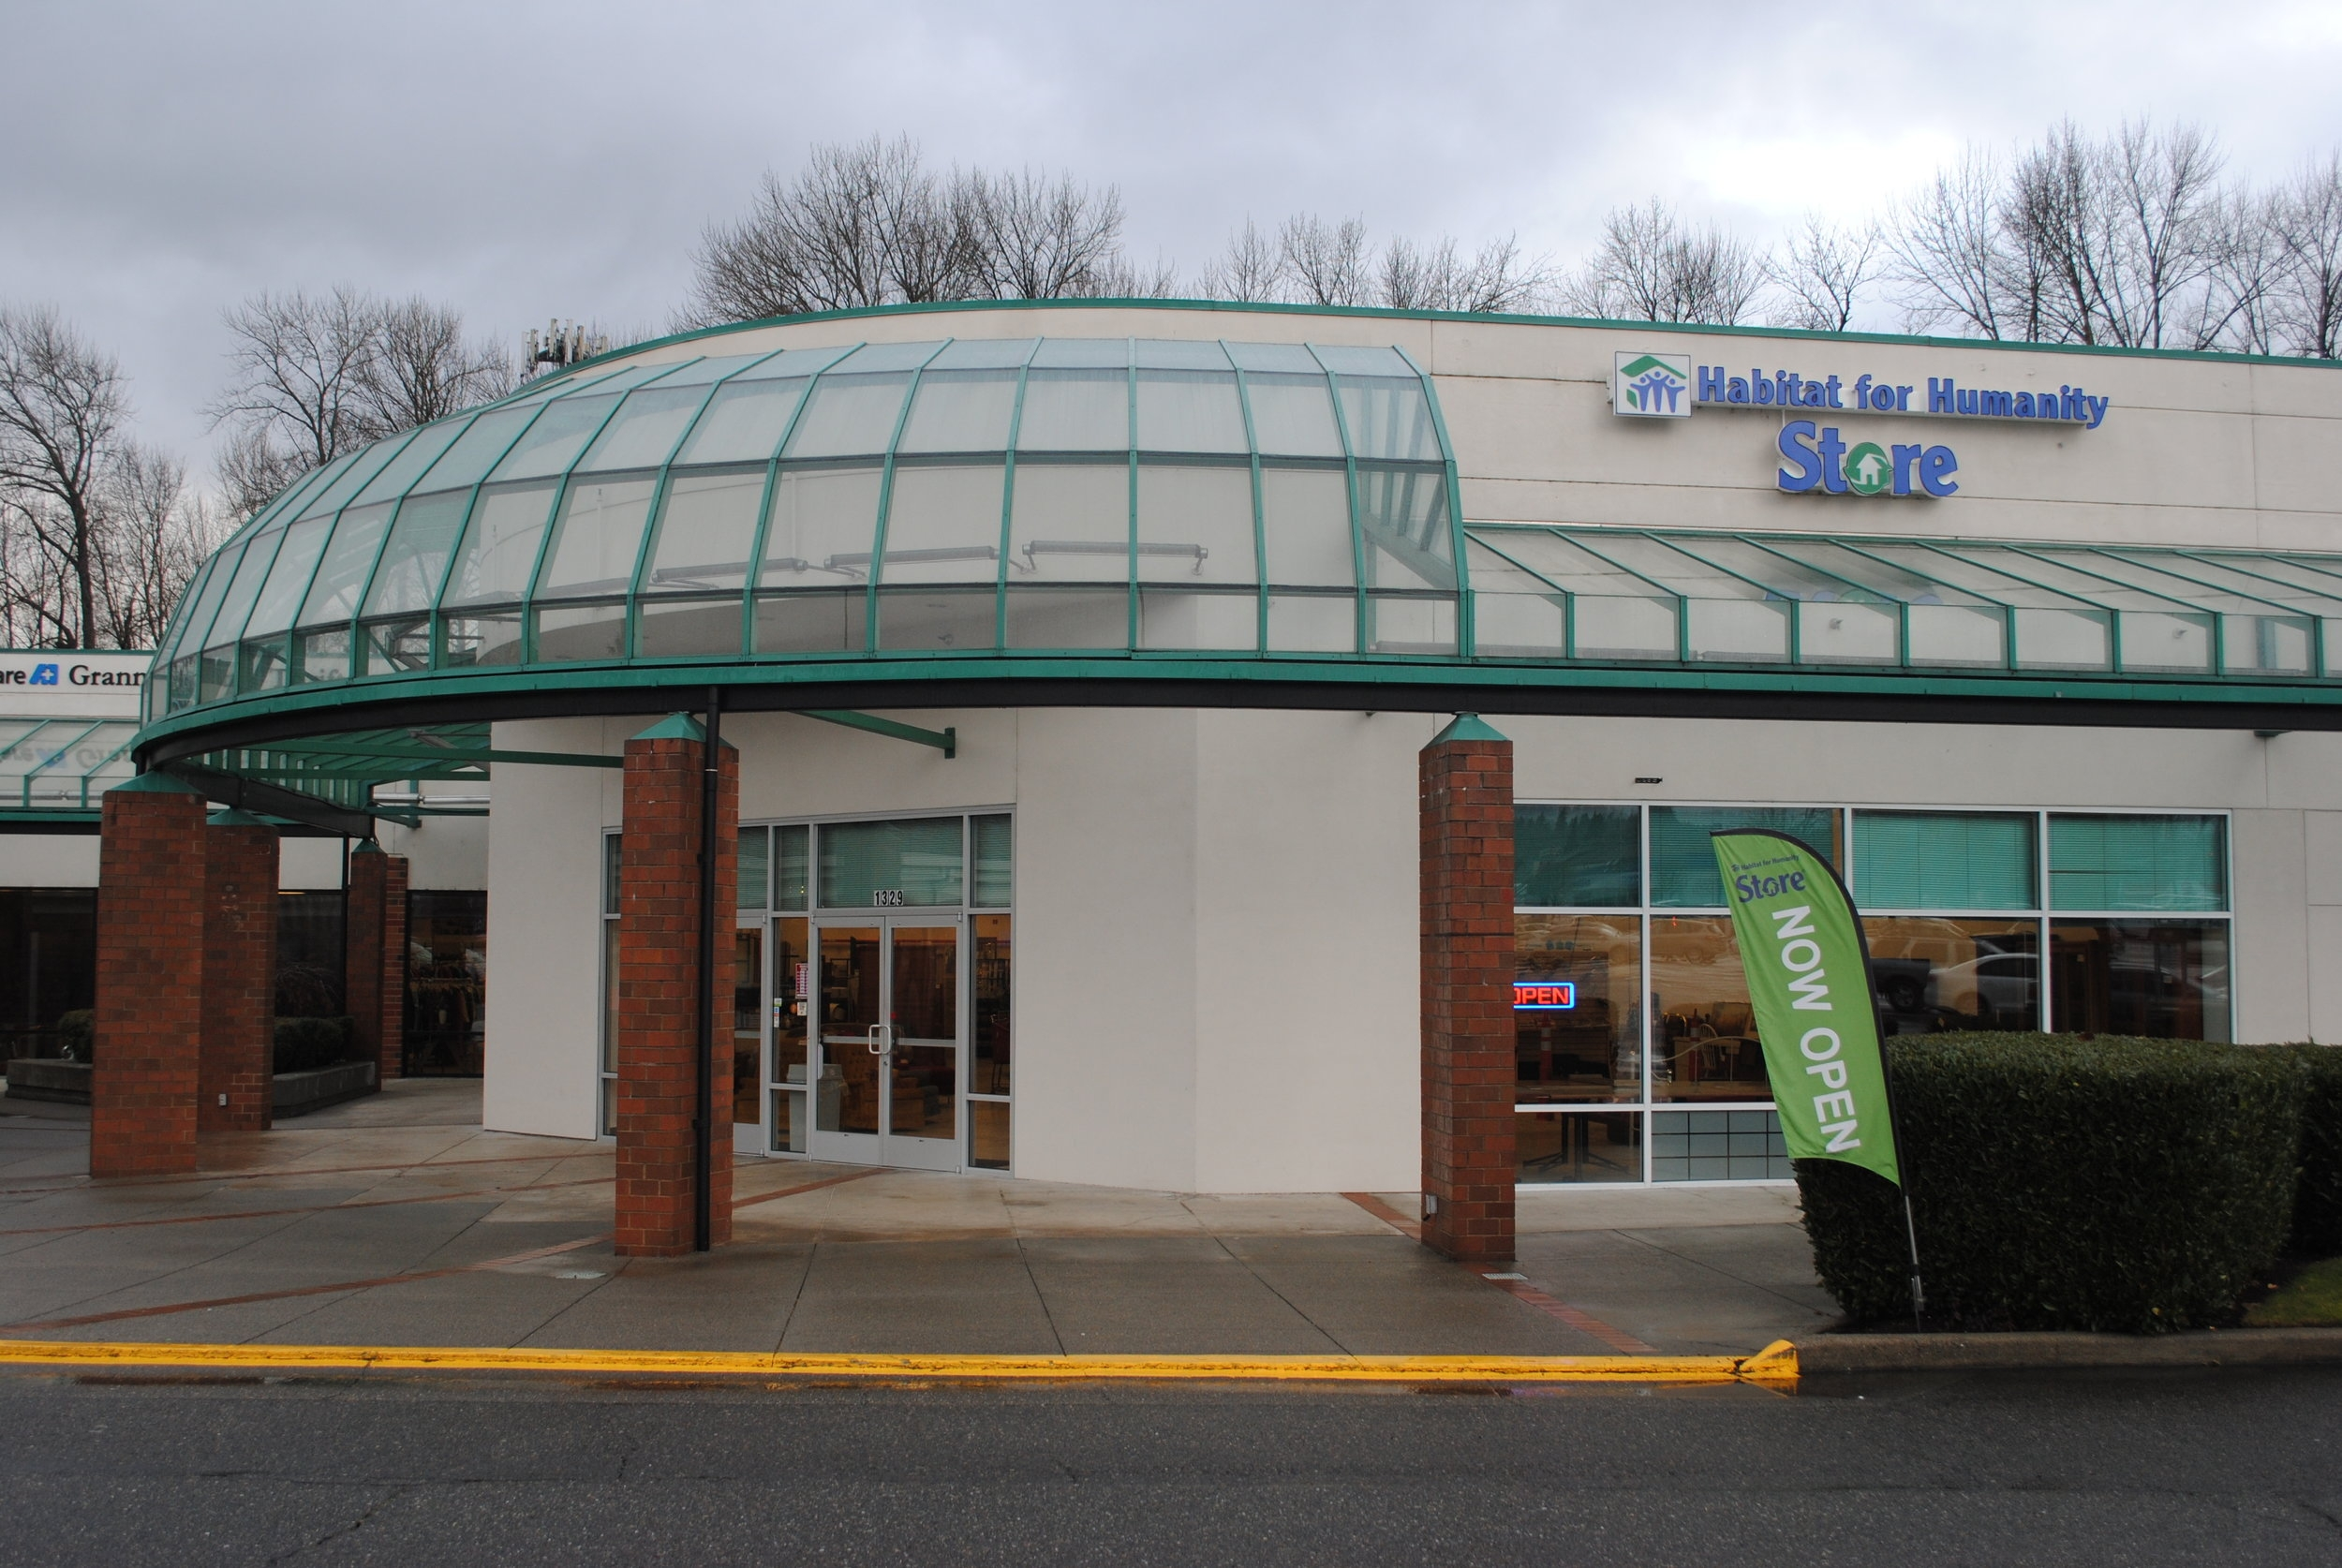 puyallup-habitat-for-humanity-store